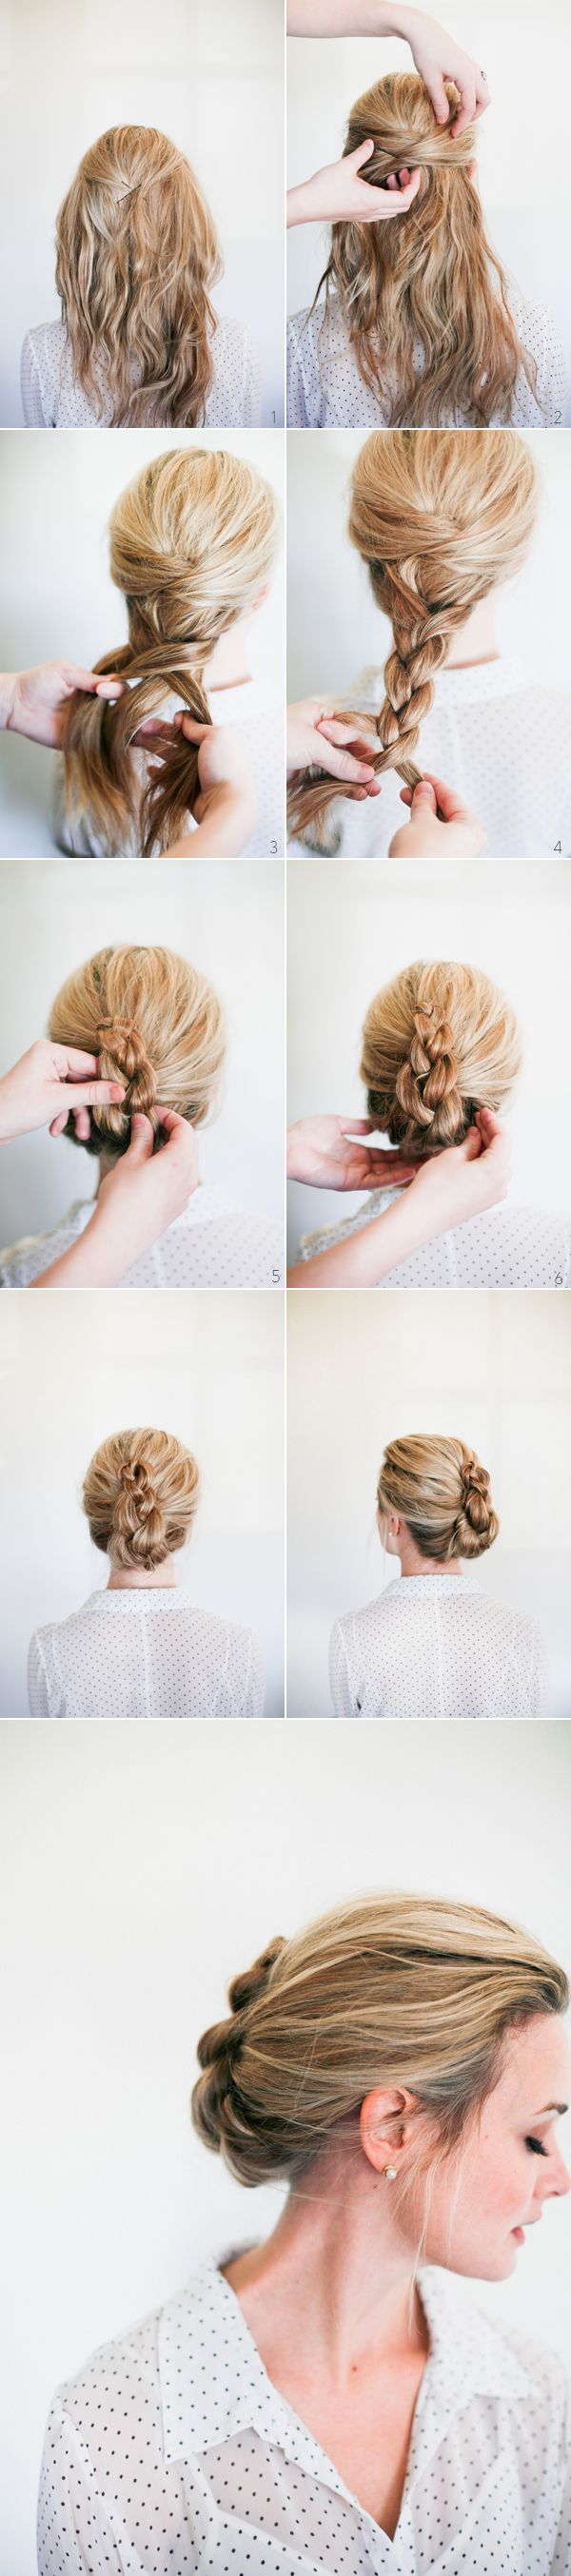 150 best Hair images on Pinterest | Hairstyle ideas, Casual ...